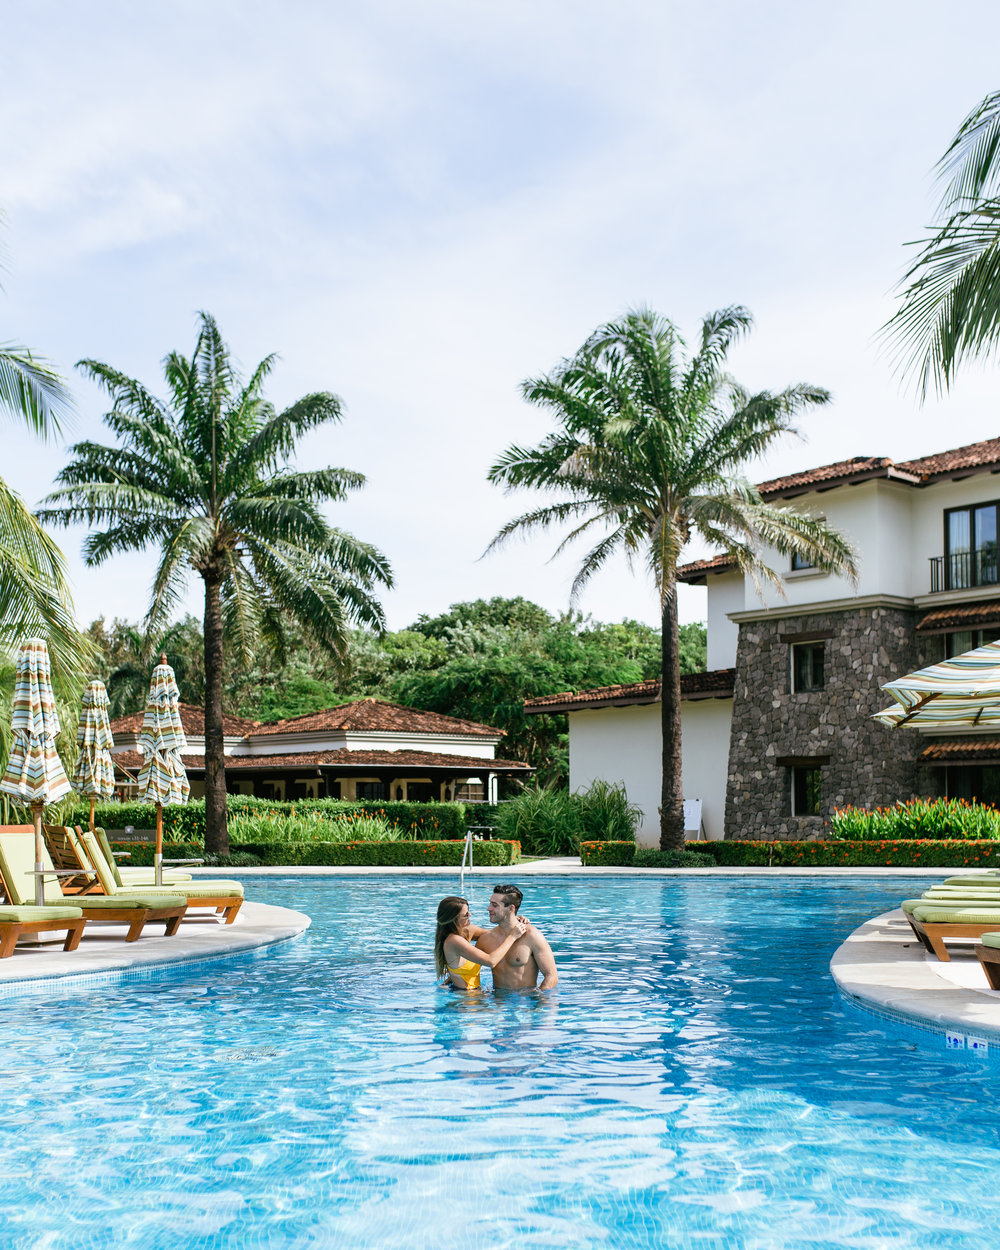 JW Marriott Guanacaste Costa Rica